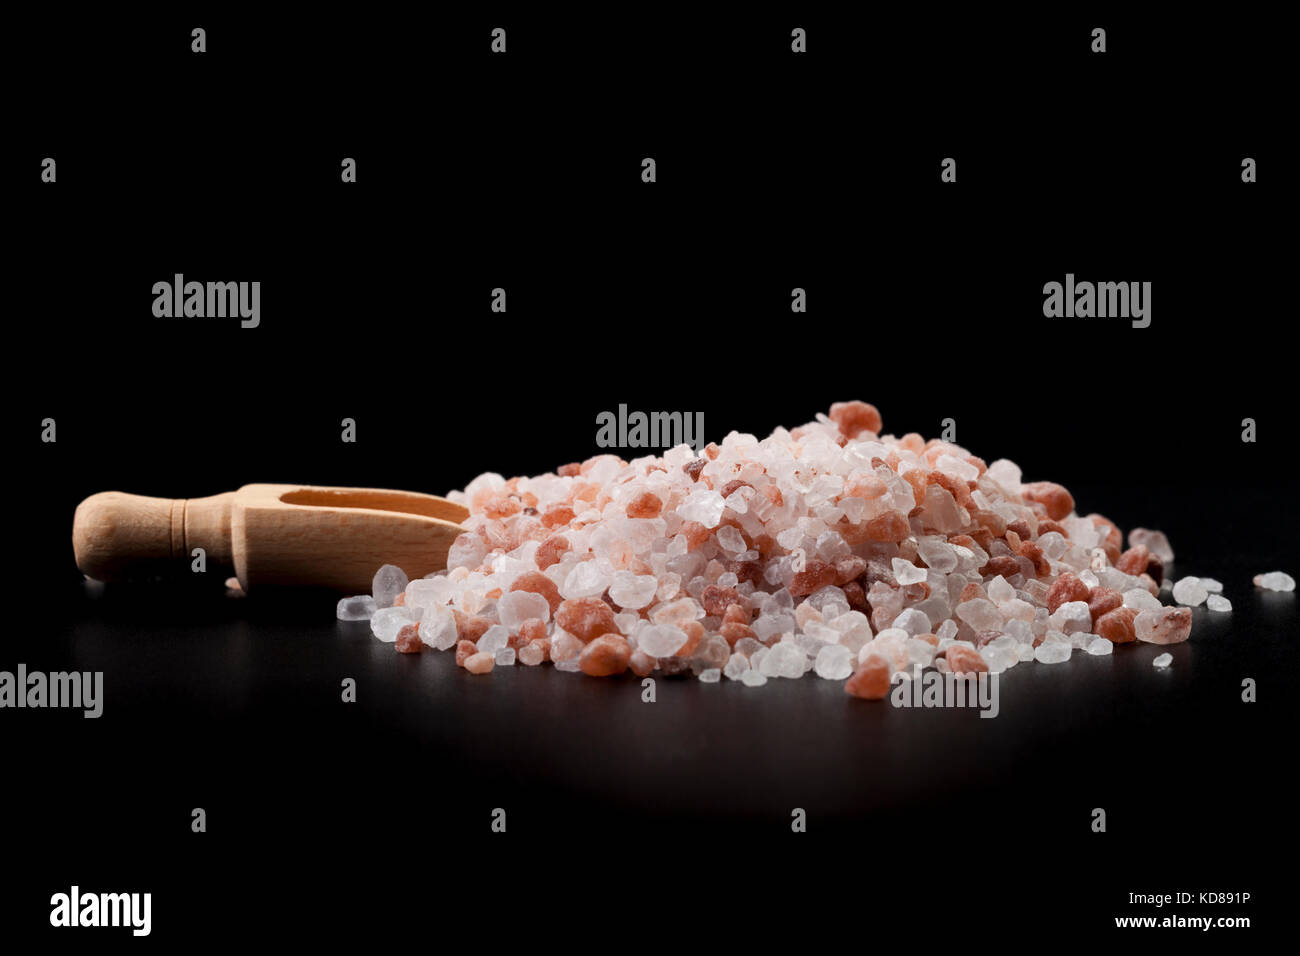 Brown Wood Spice Spoon With Hymalaian Salt Crystals on Black Background - Stock Image